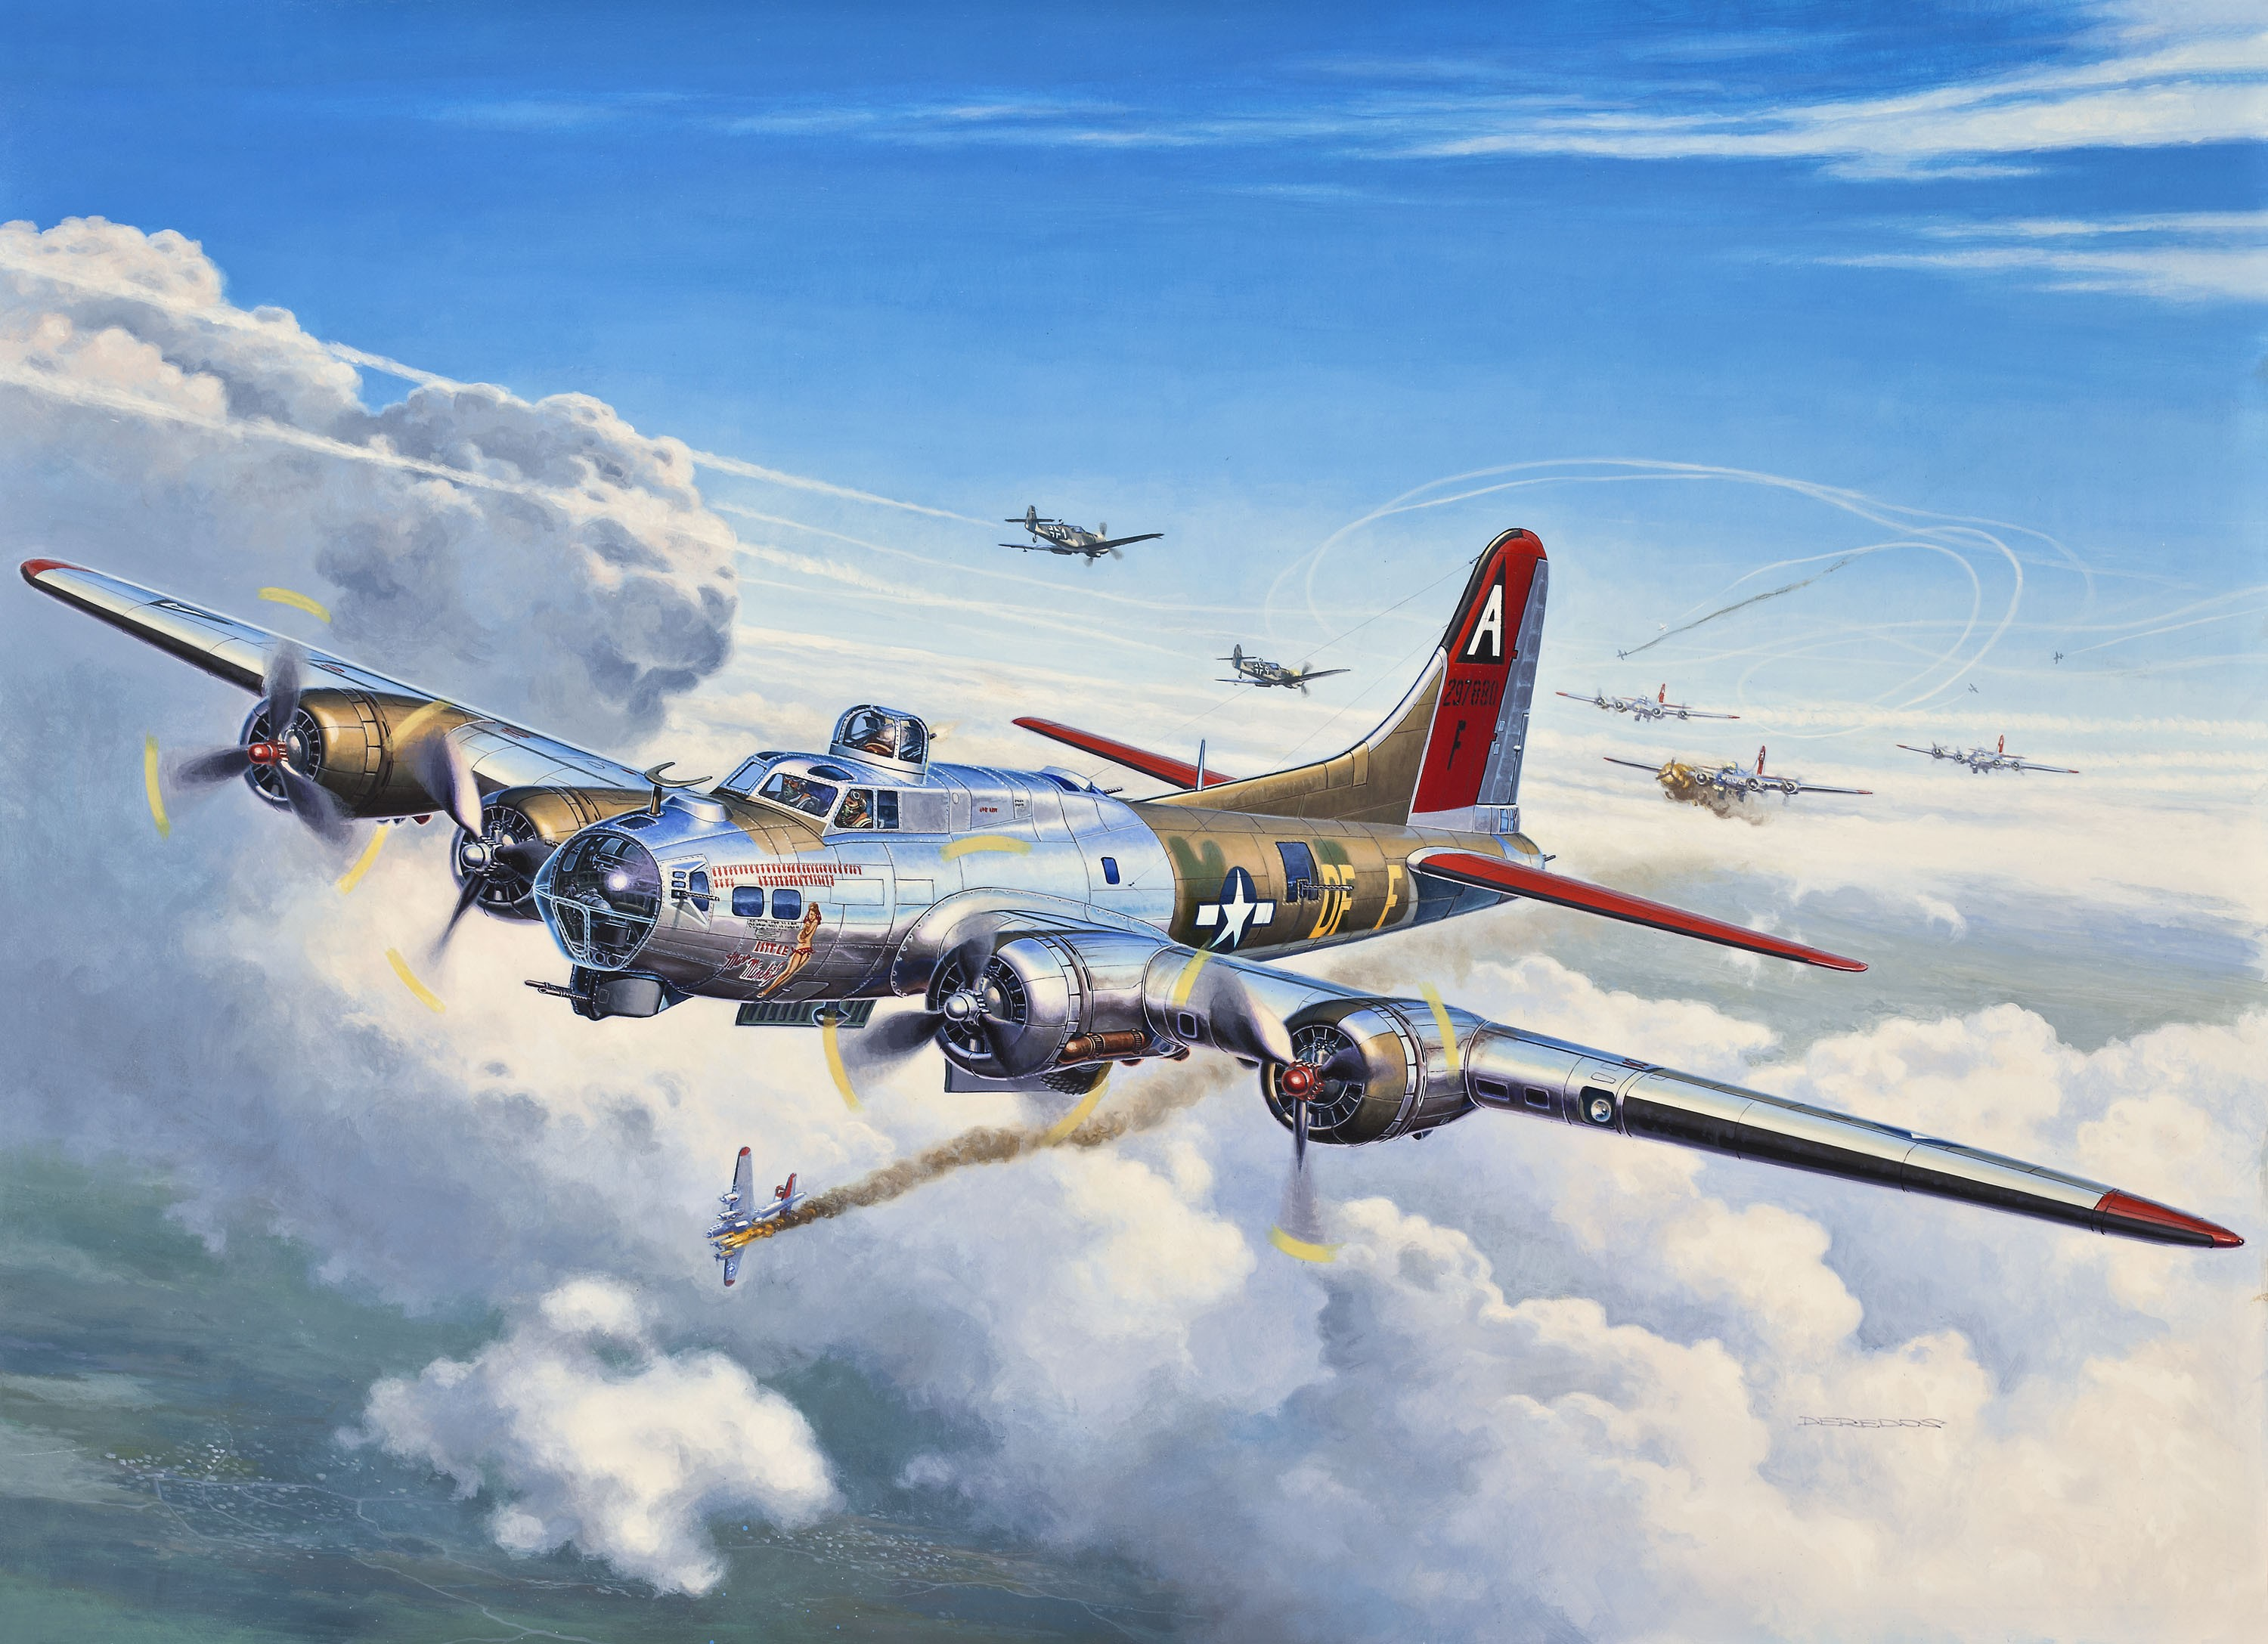 B 17 Flying Fortress Wallpaper B17 Wallpaper - Wallpa...